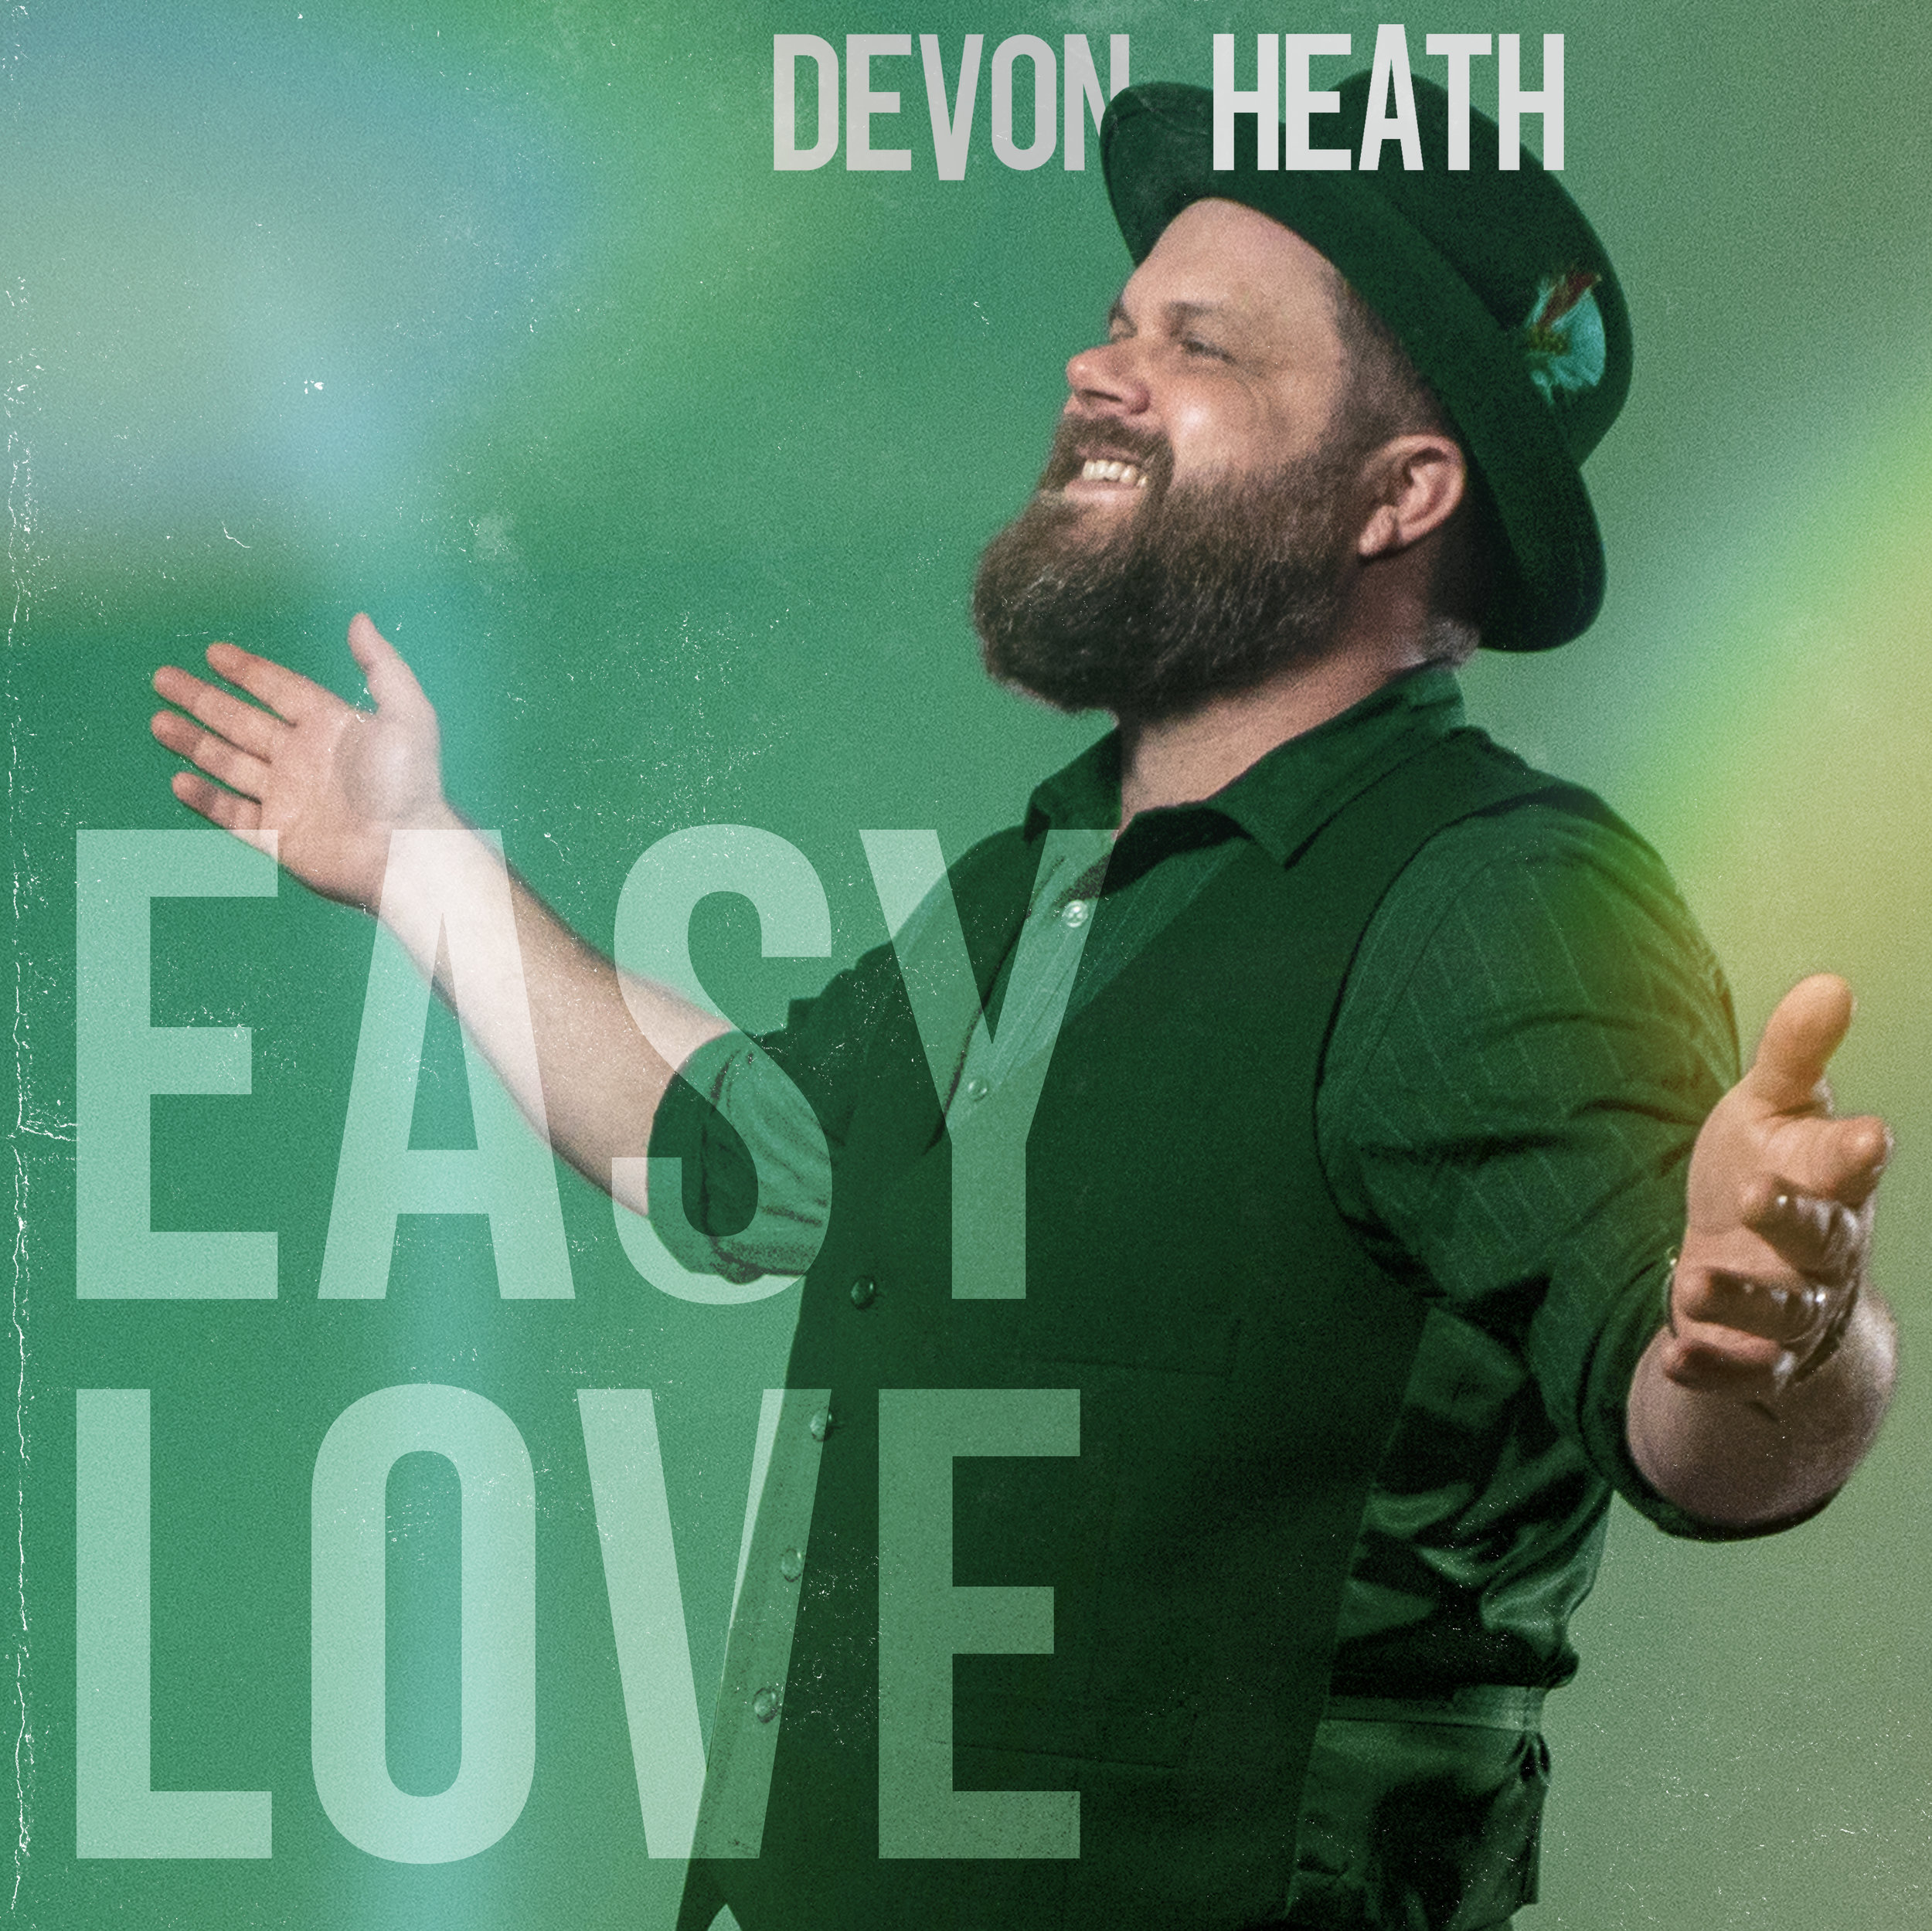 Easy Love - Coming July 20th!